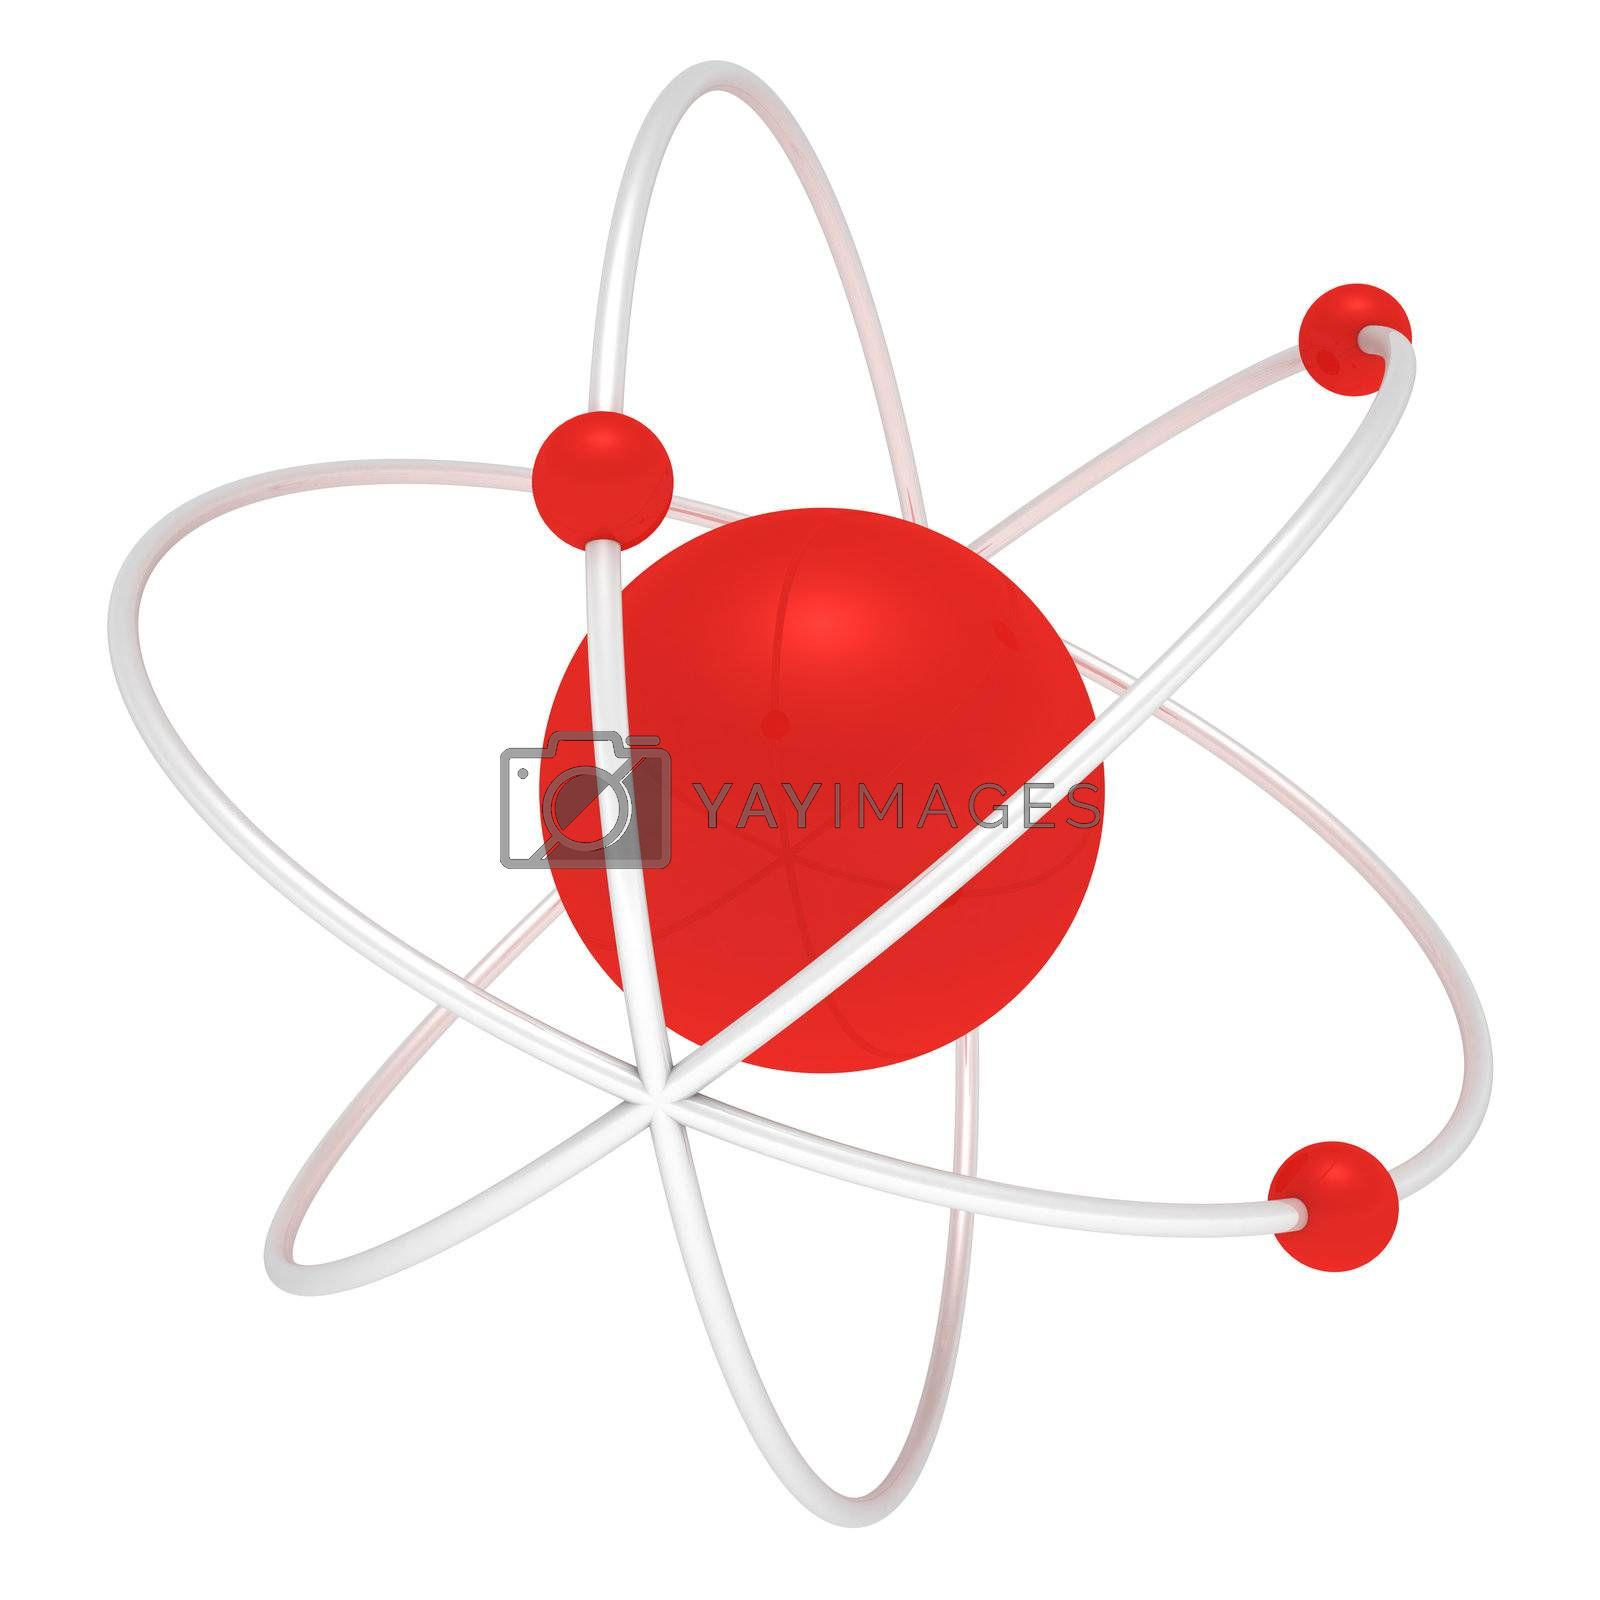 Three-dimensional atom isolated on white background